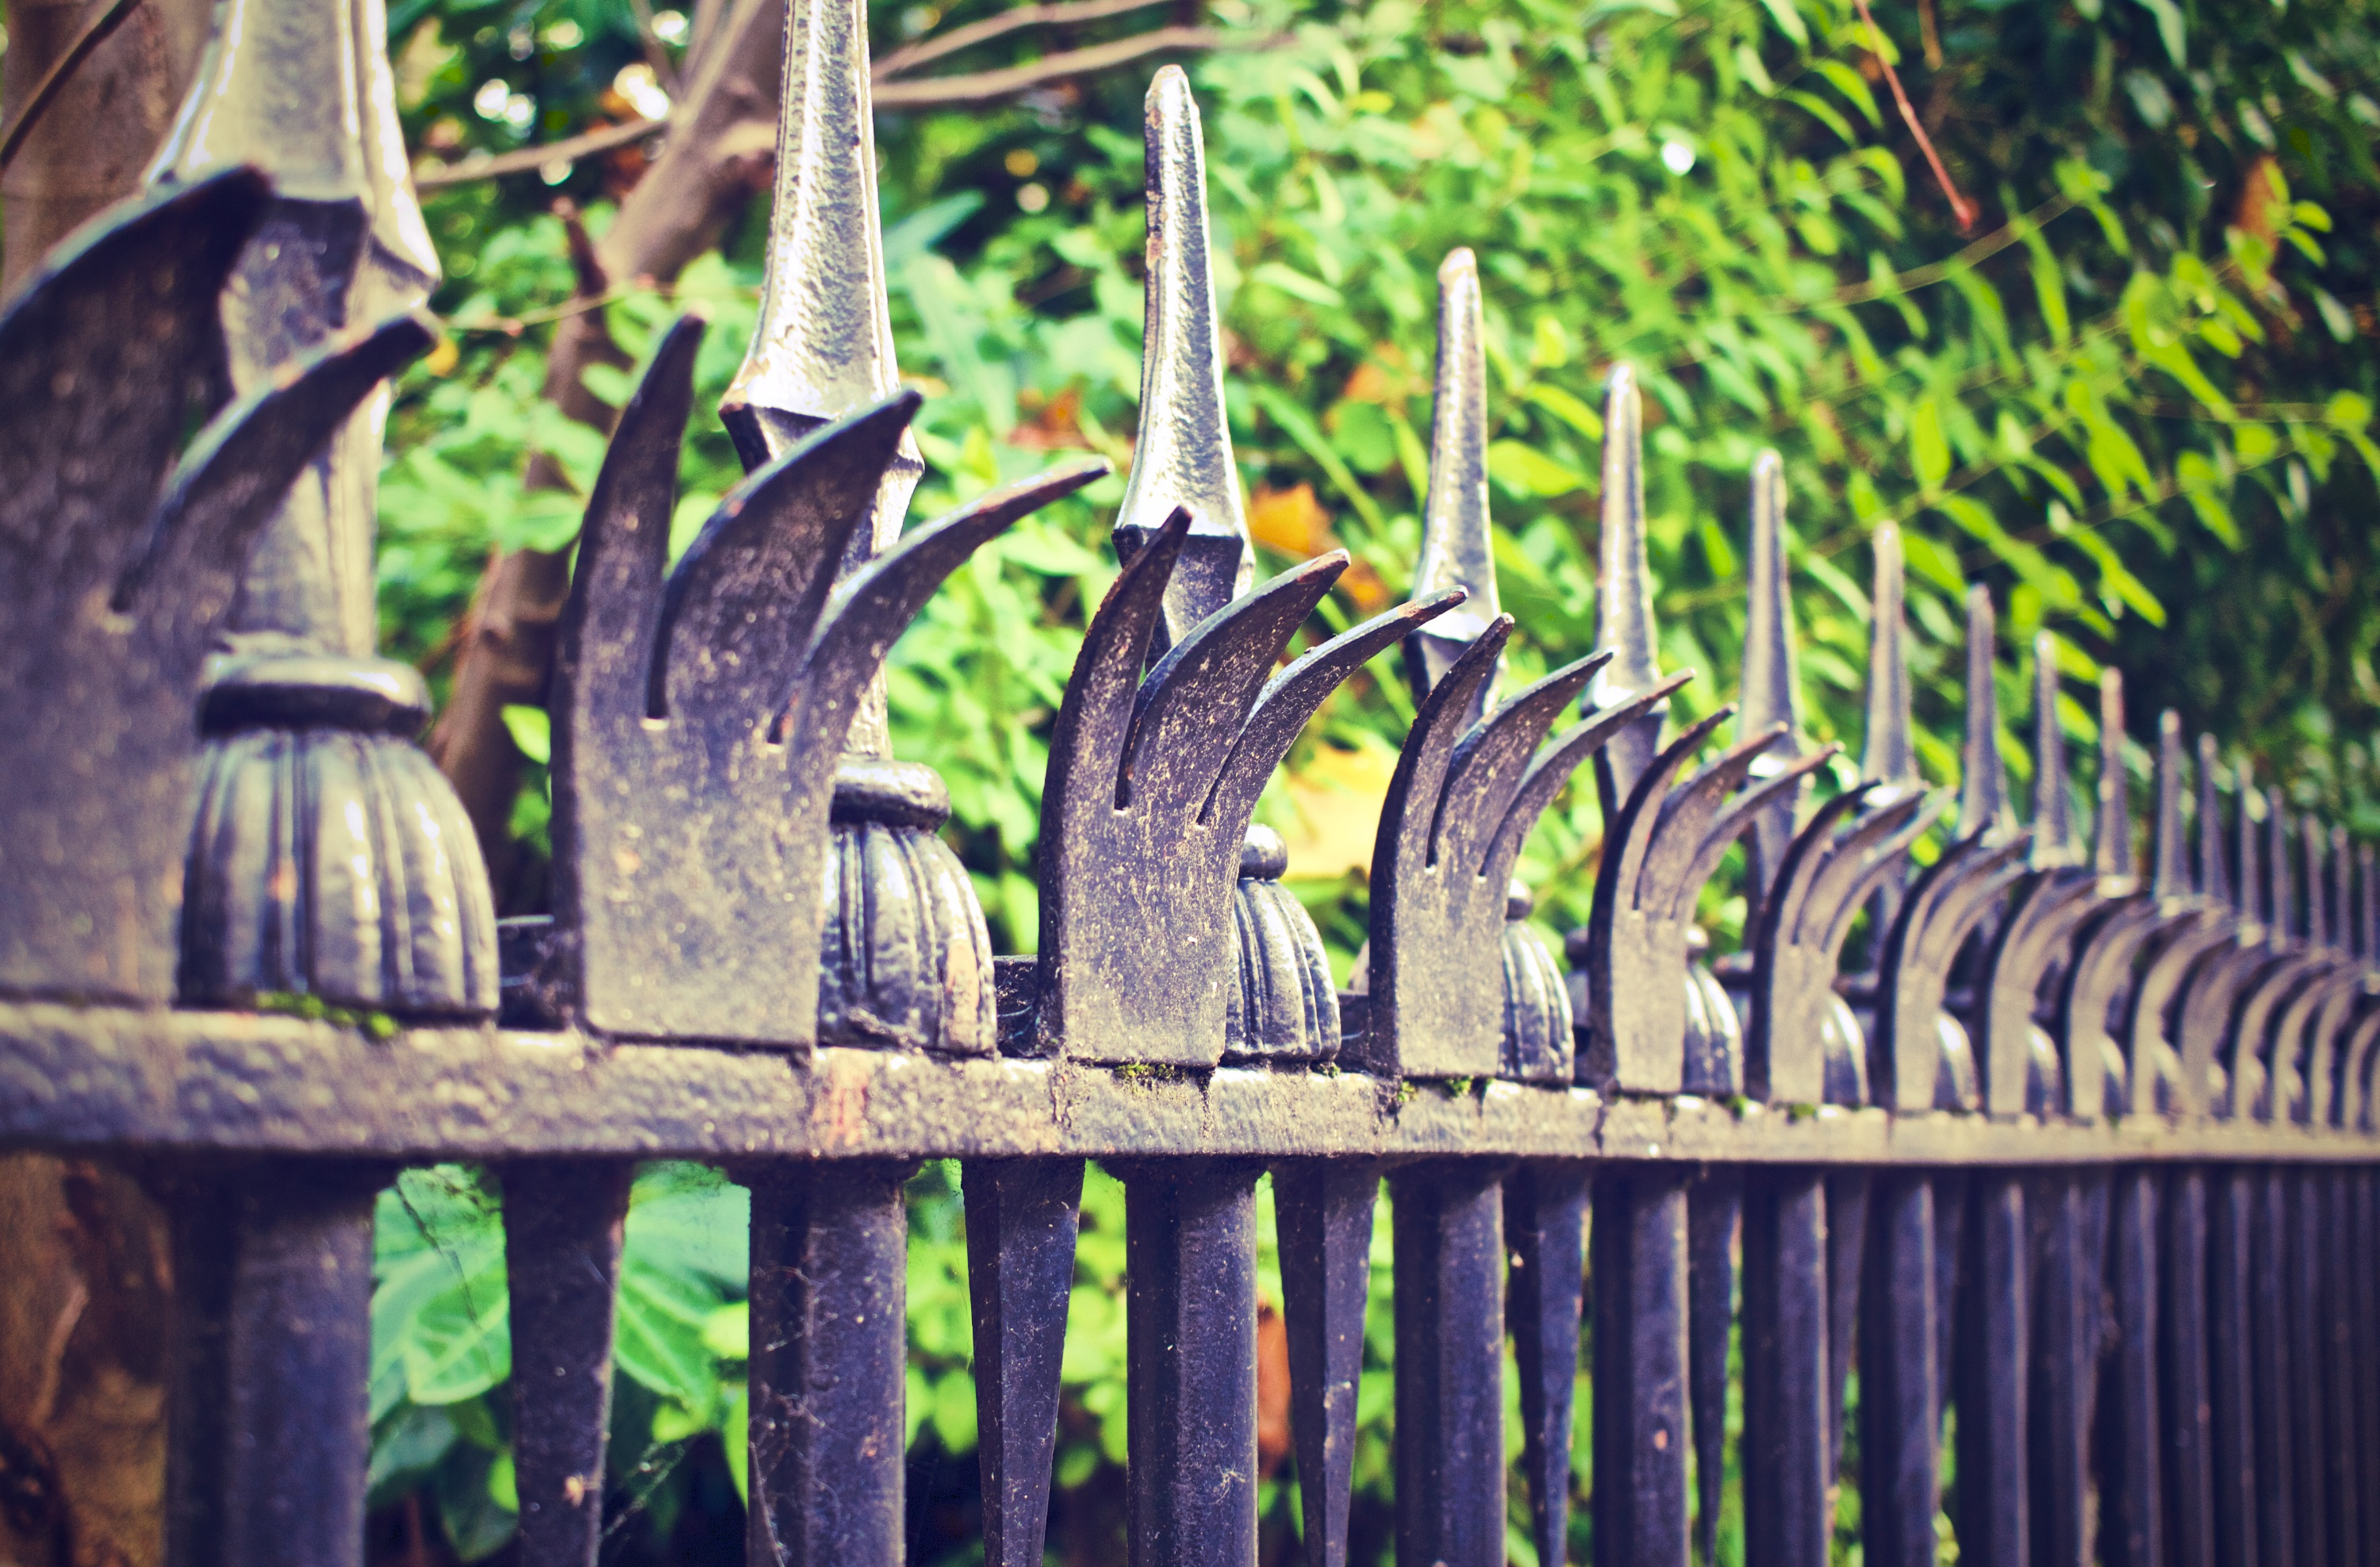 fence-569281